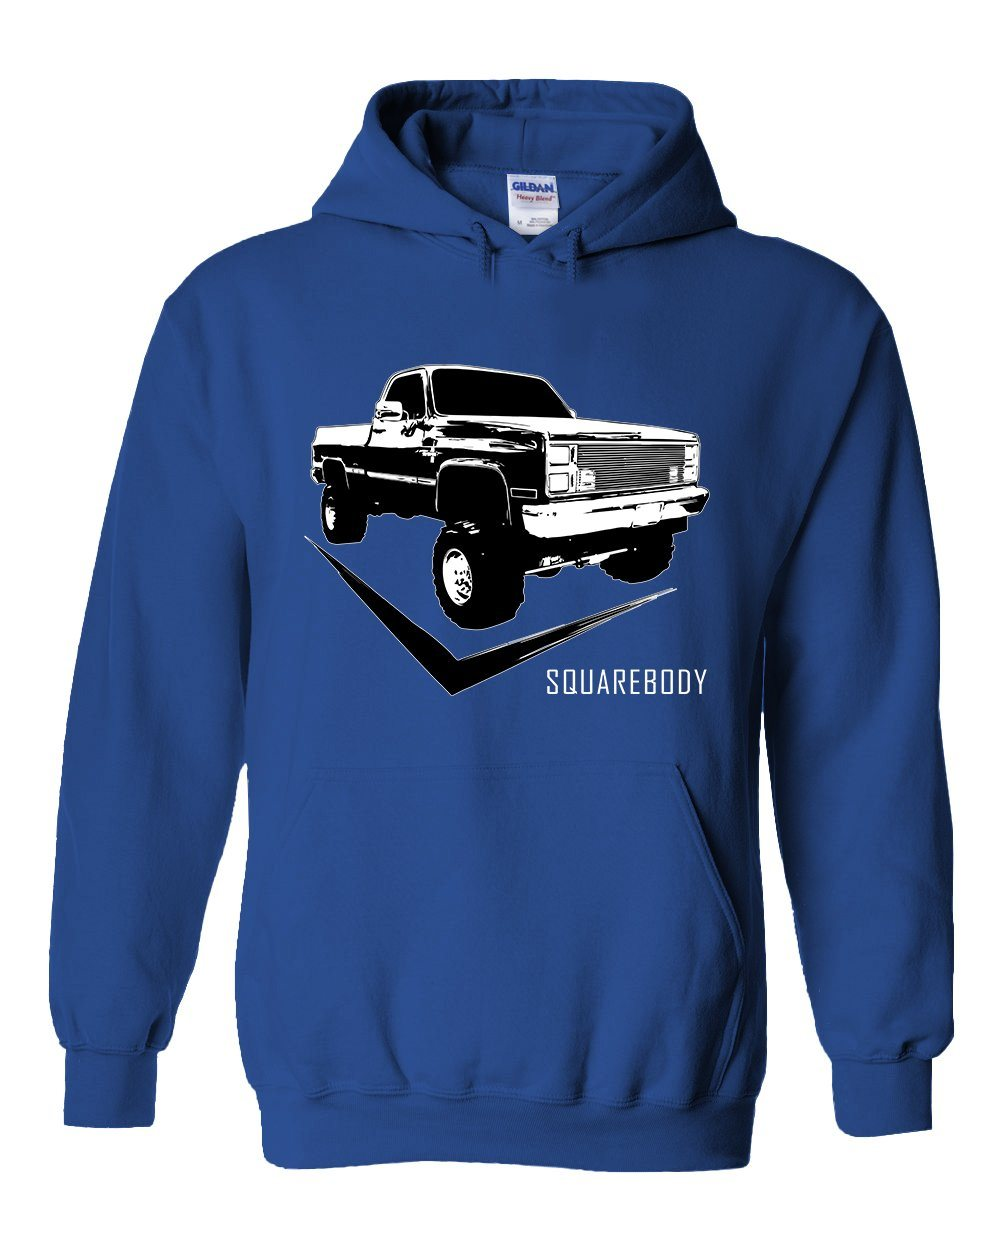 Square Body Chevy C10 Hoodie | Squarebody Sweatshirt |Aggressive Thread Truck Apparel